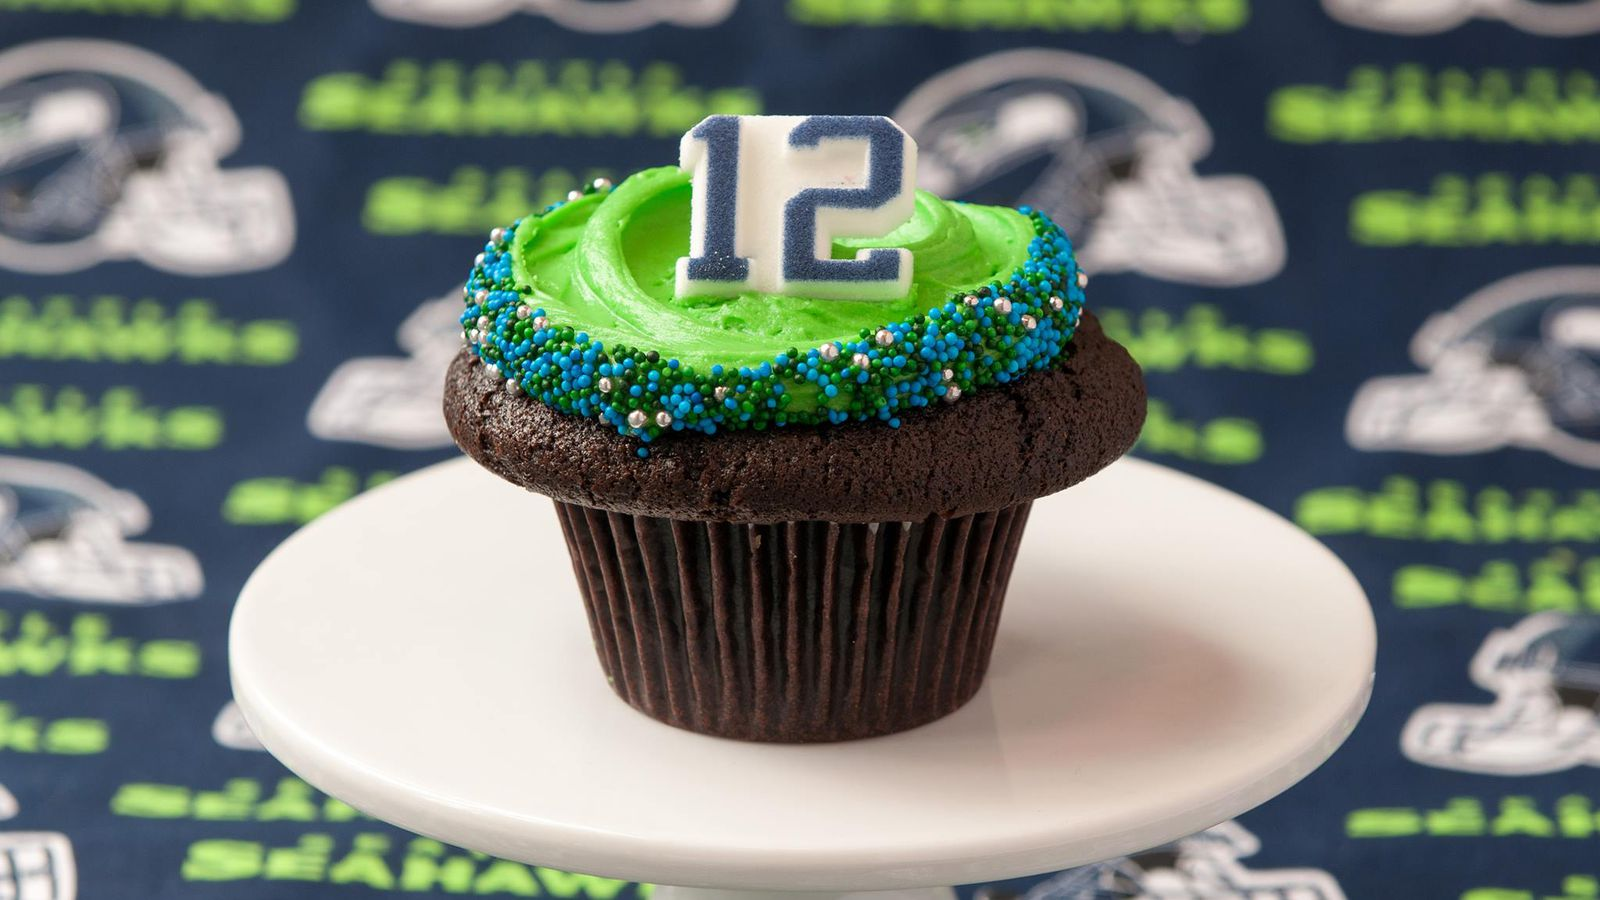 12th Fan Cupcakes On Game Day Seahawks Food And Drink